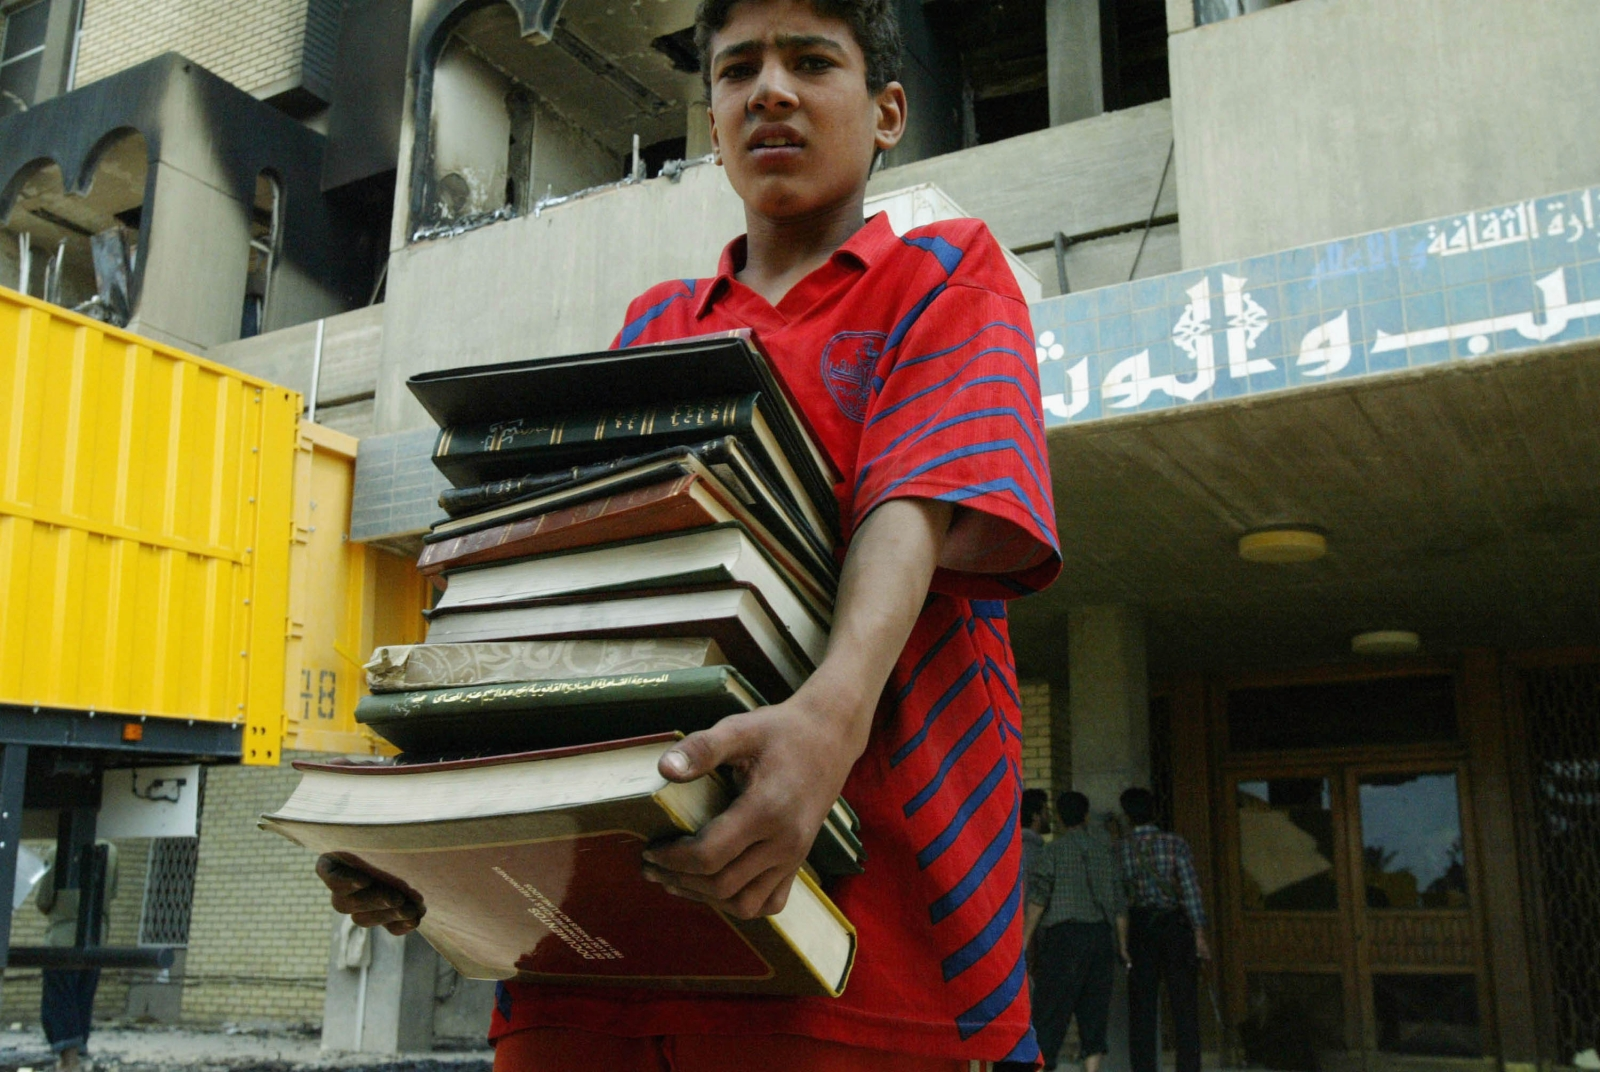 An Iraqi boy recovers books from Baghdad's